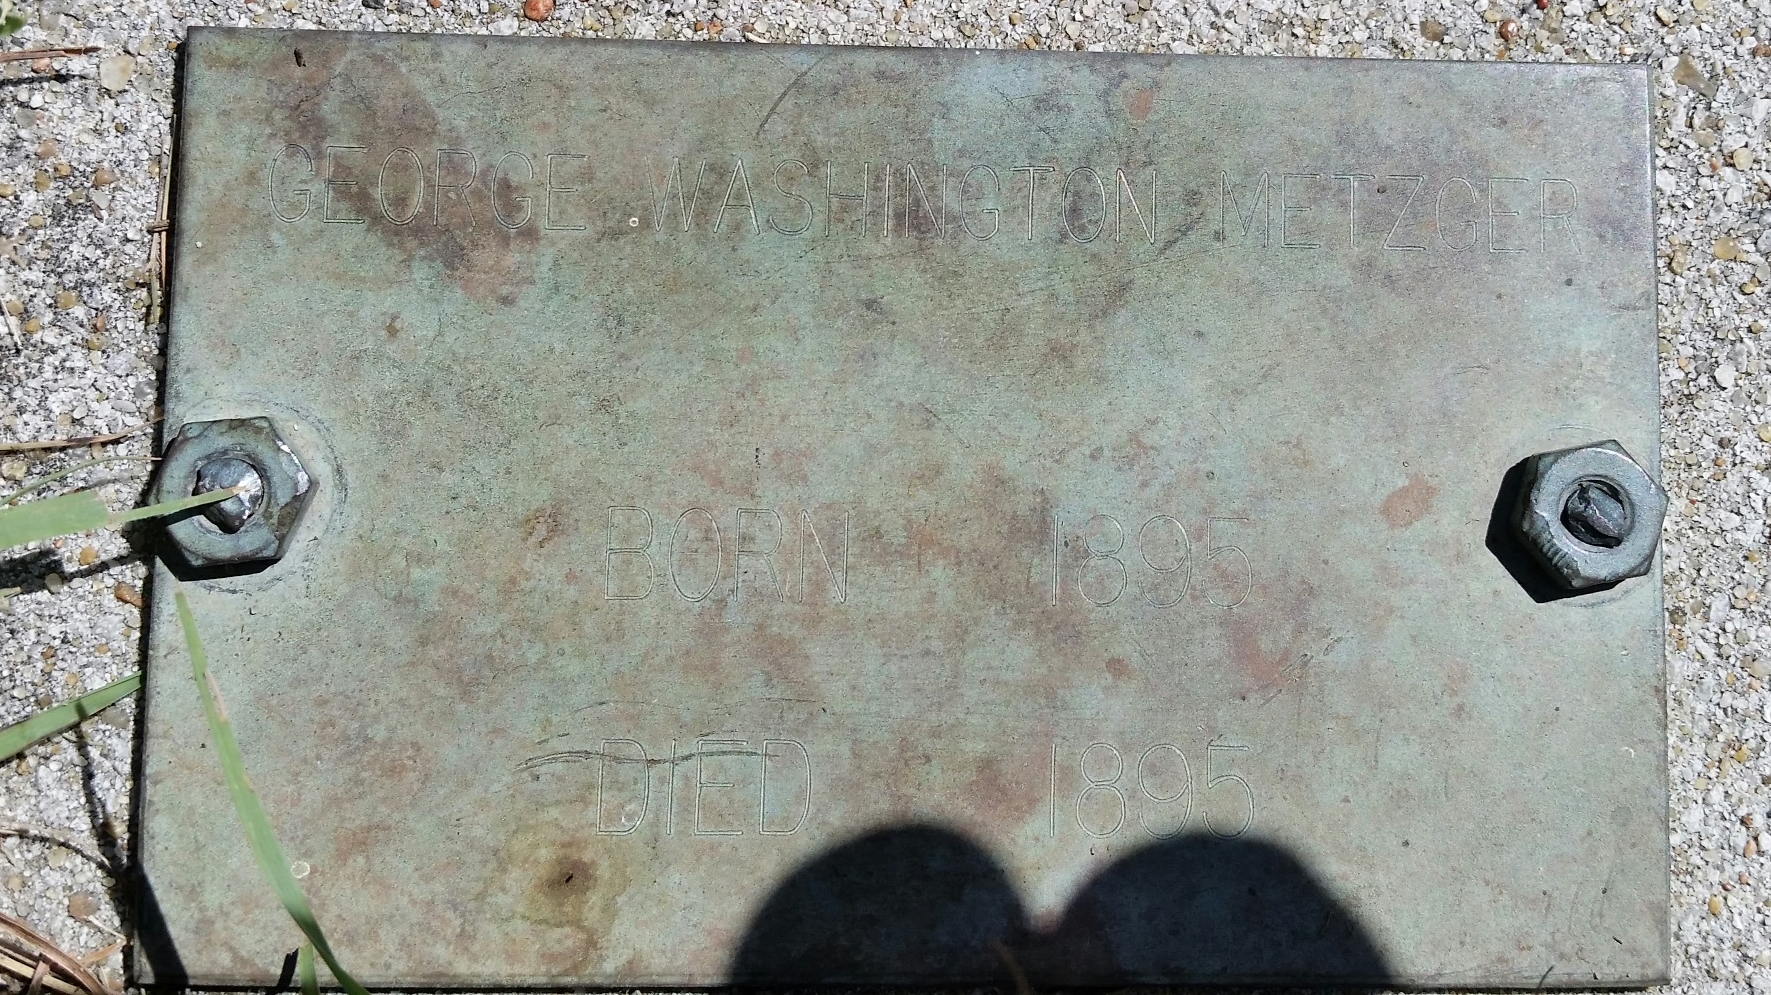 George Washington Metzger